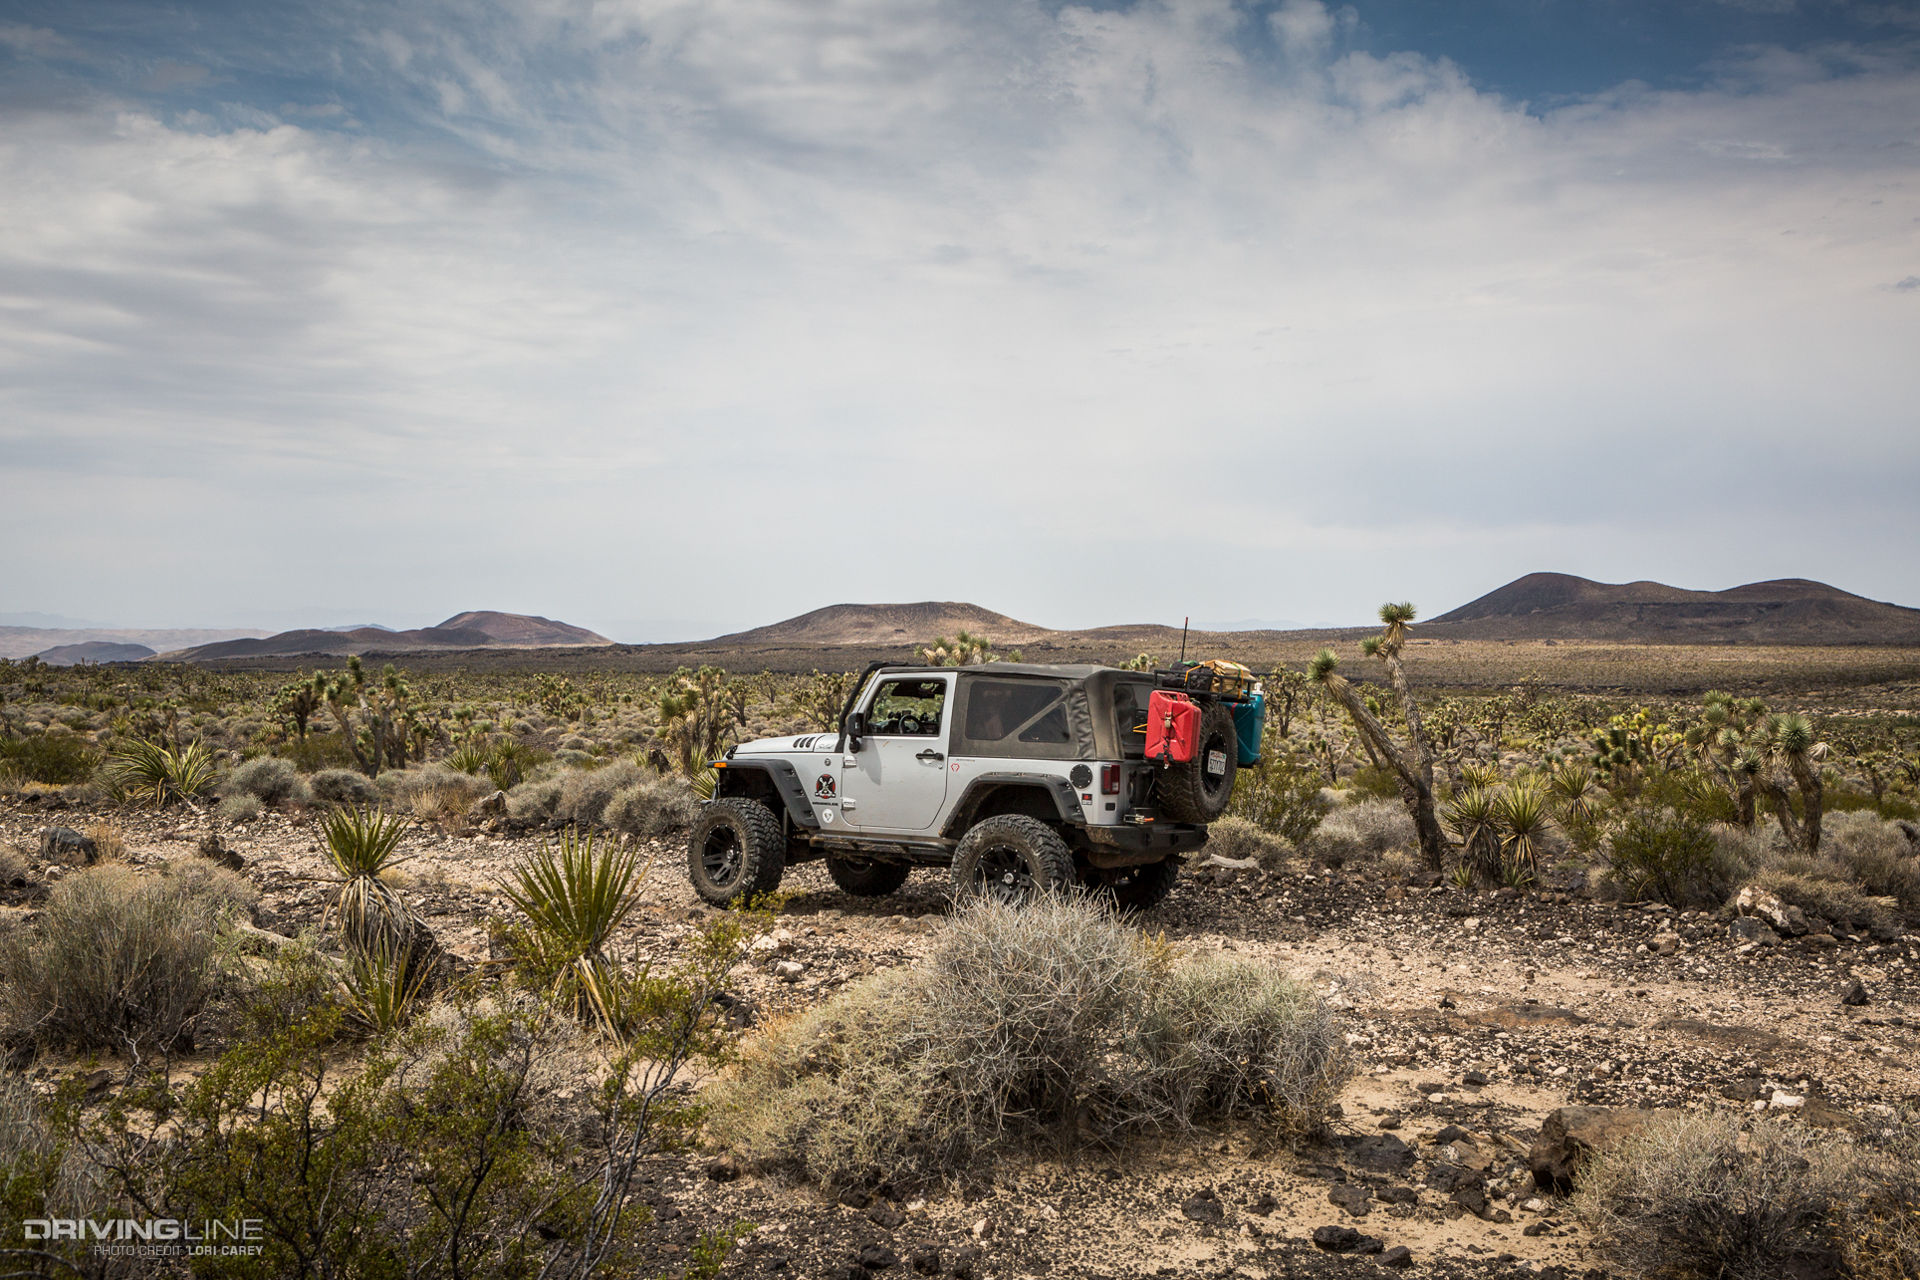 Aiken Mine Trail Review: Volcanic Wheeling in the Mojave